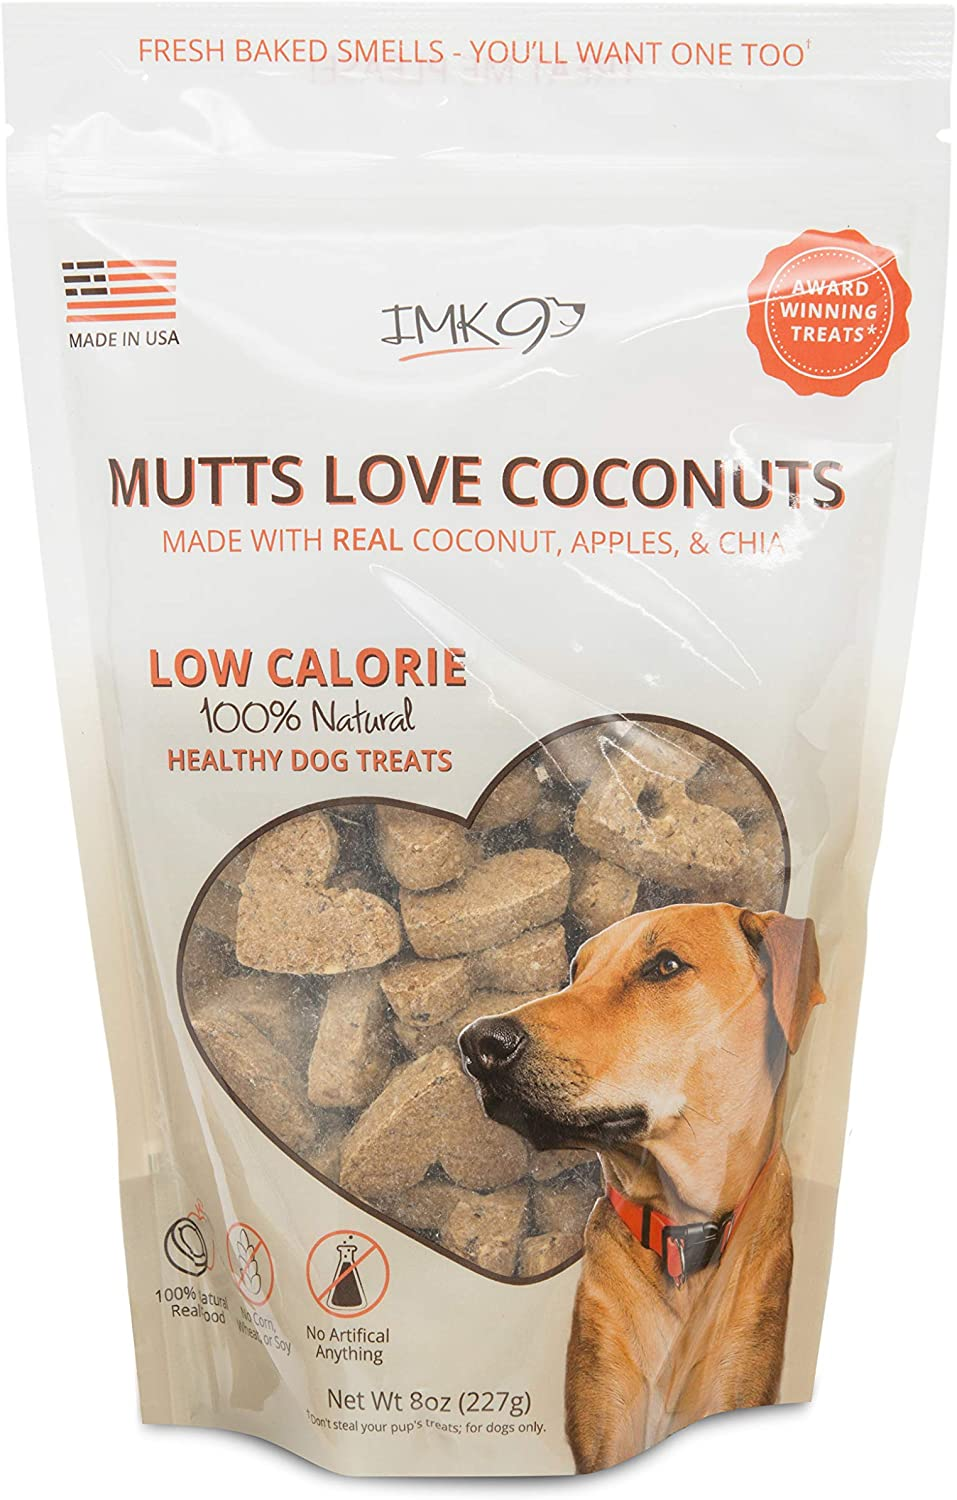 IMK9 Natural Training Treats Low Calorie - Limited Ingredient Made in USA - Organic, Healthy, Balanced, Diet Treat Bag for Dogs, Small Puppy, Big Pets - Grain, Gluten Free - Apples, Coconut